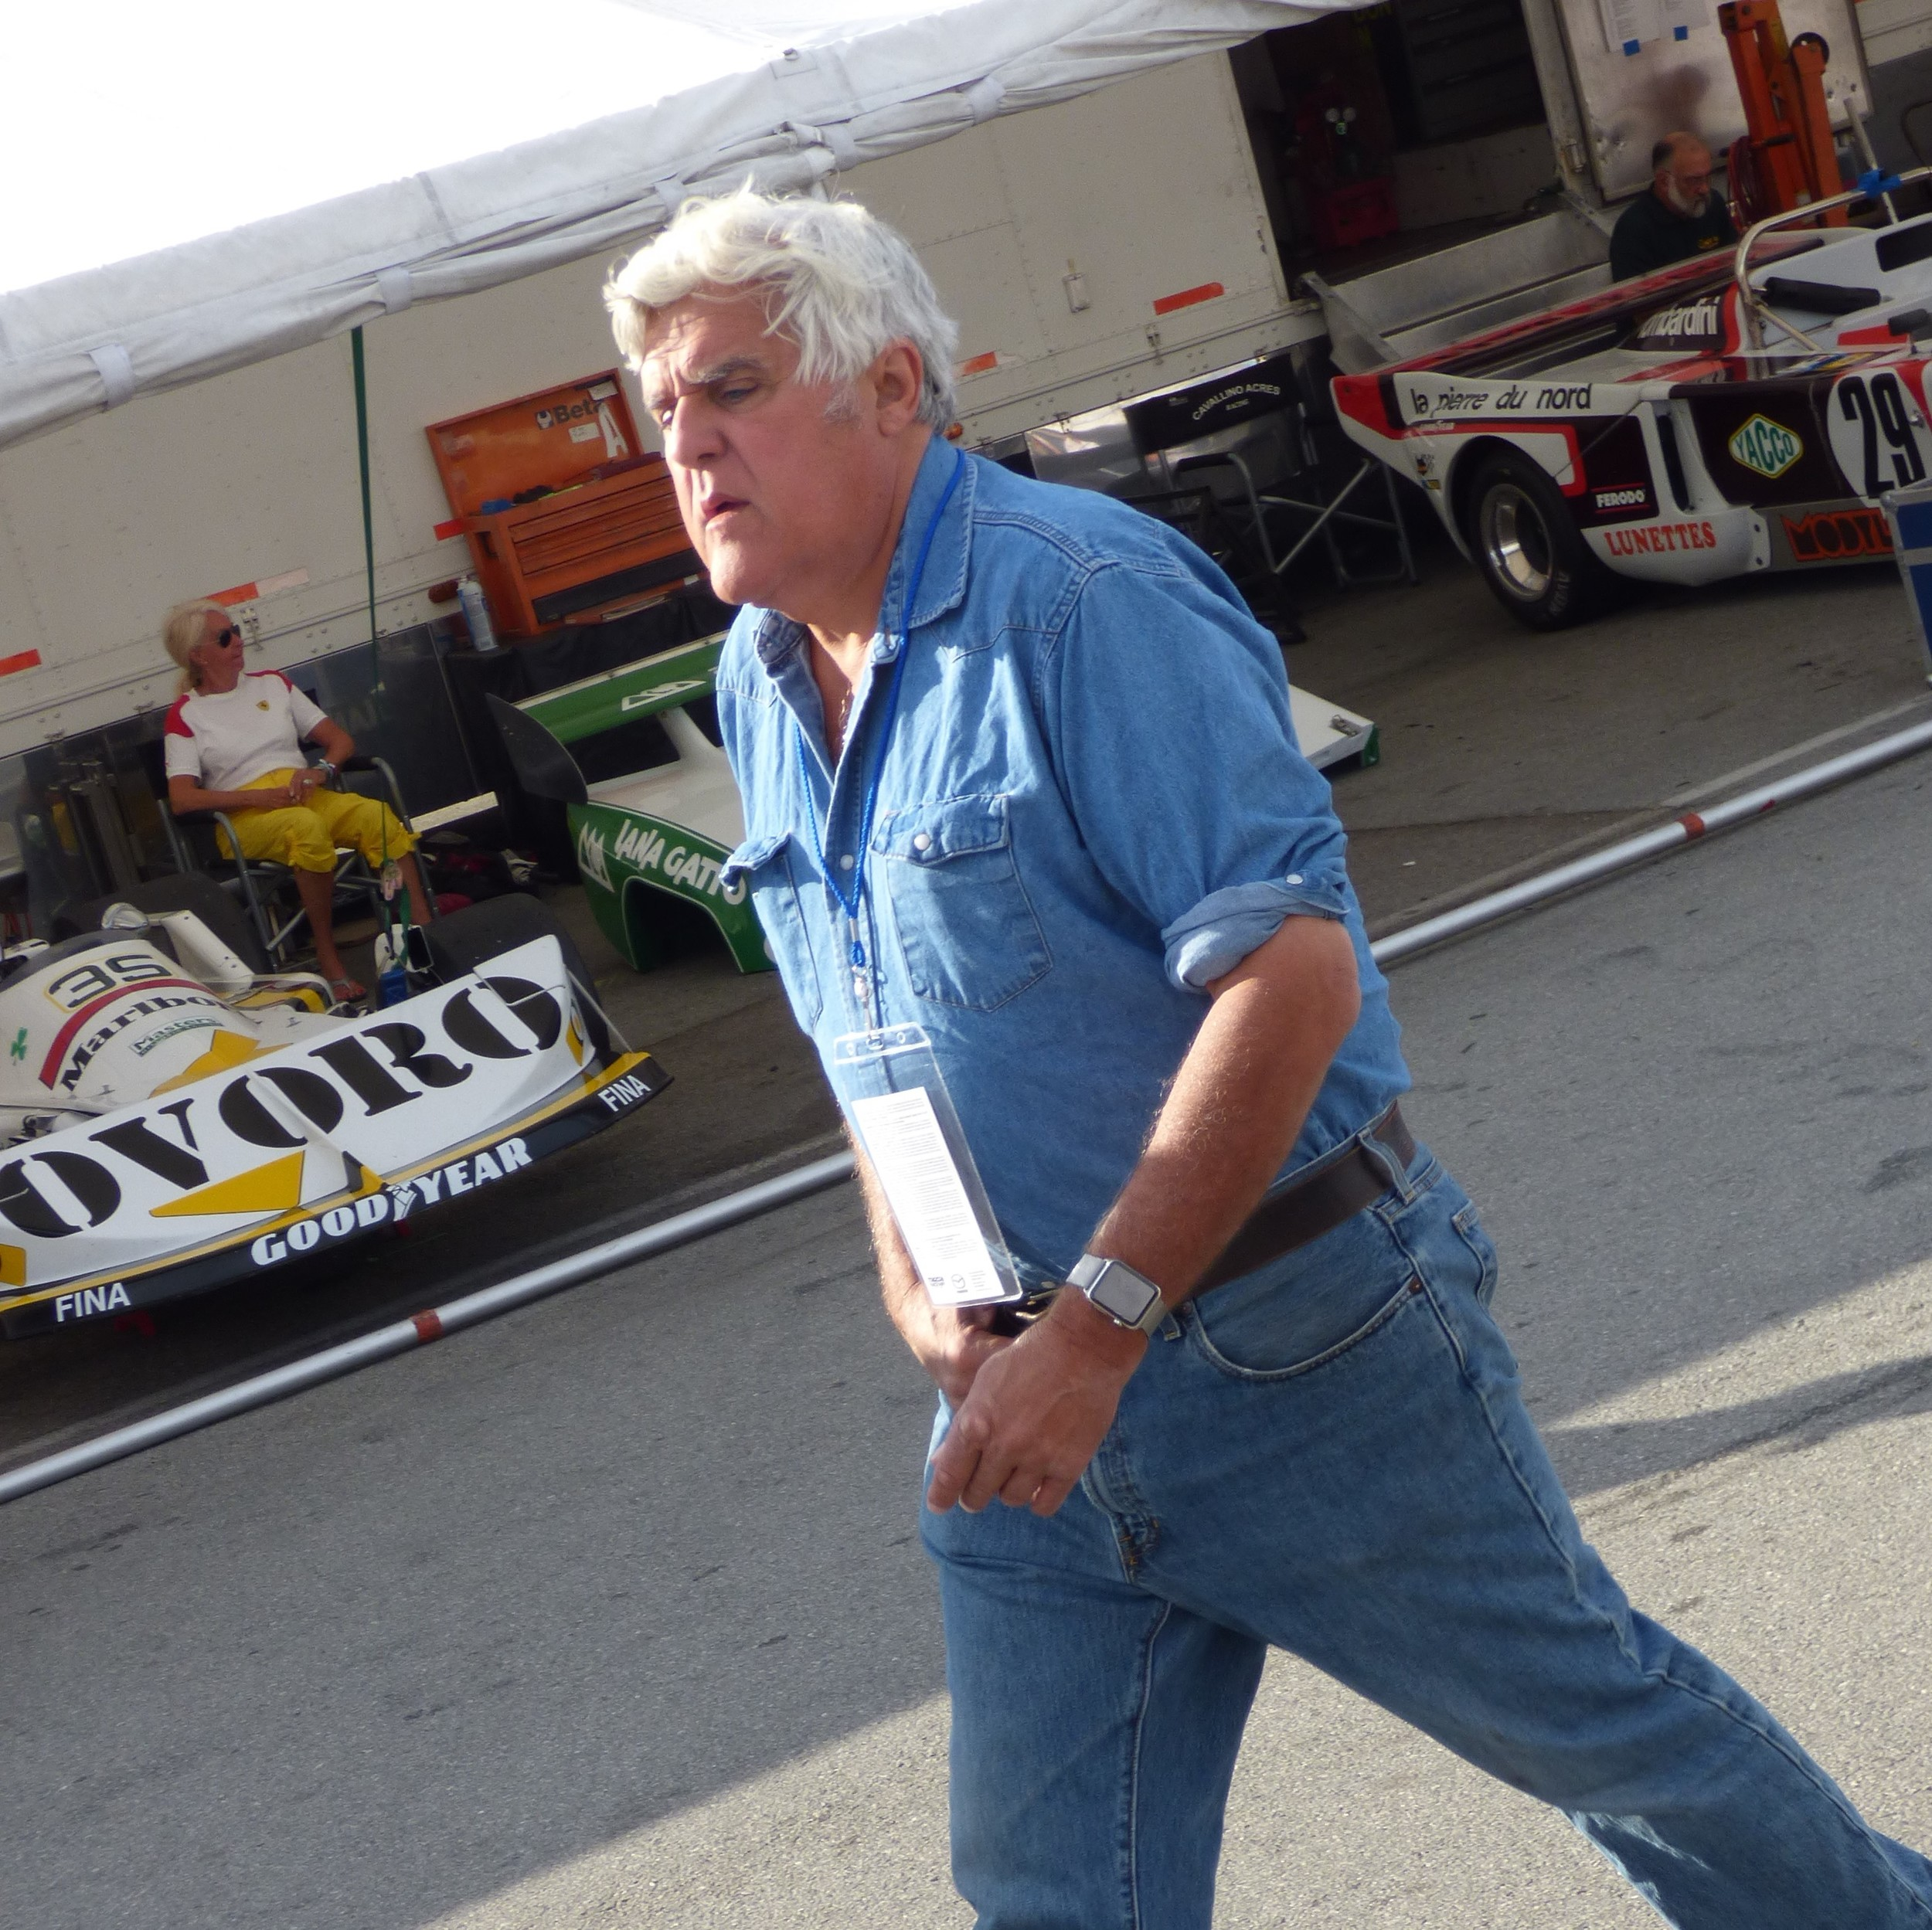 Just like clockwork...Jay Leno hits the paddock to do his interviews.